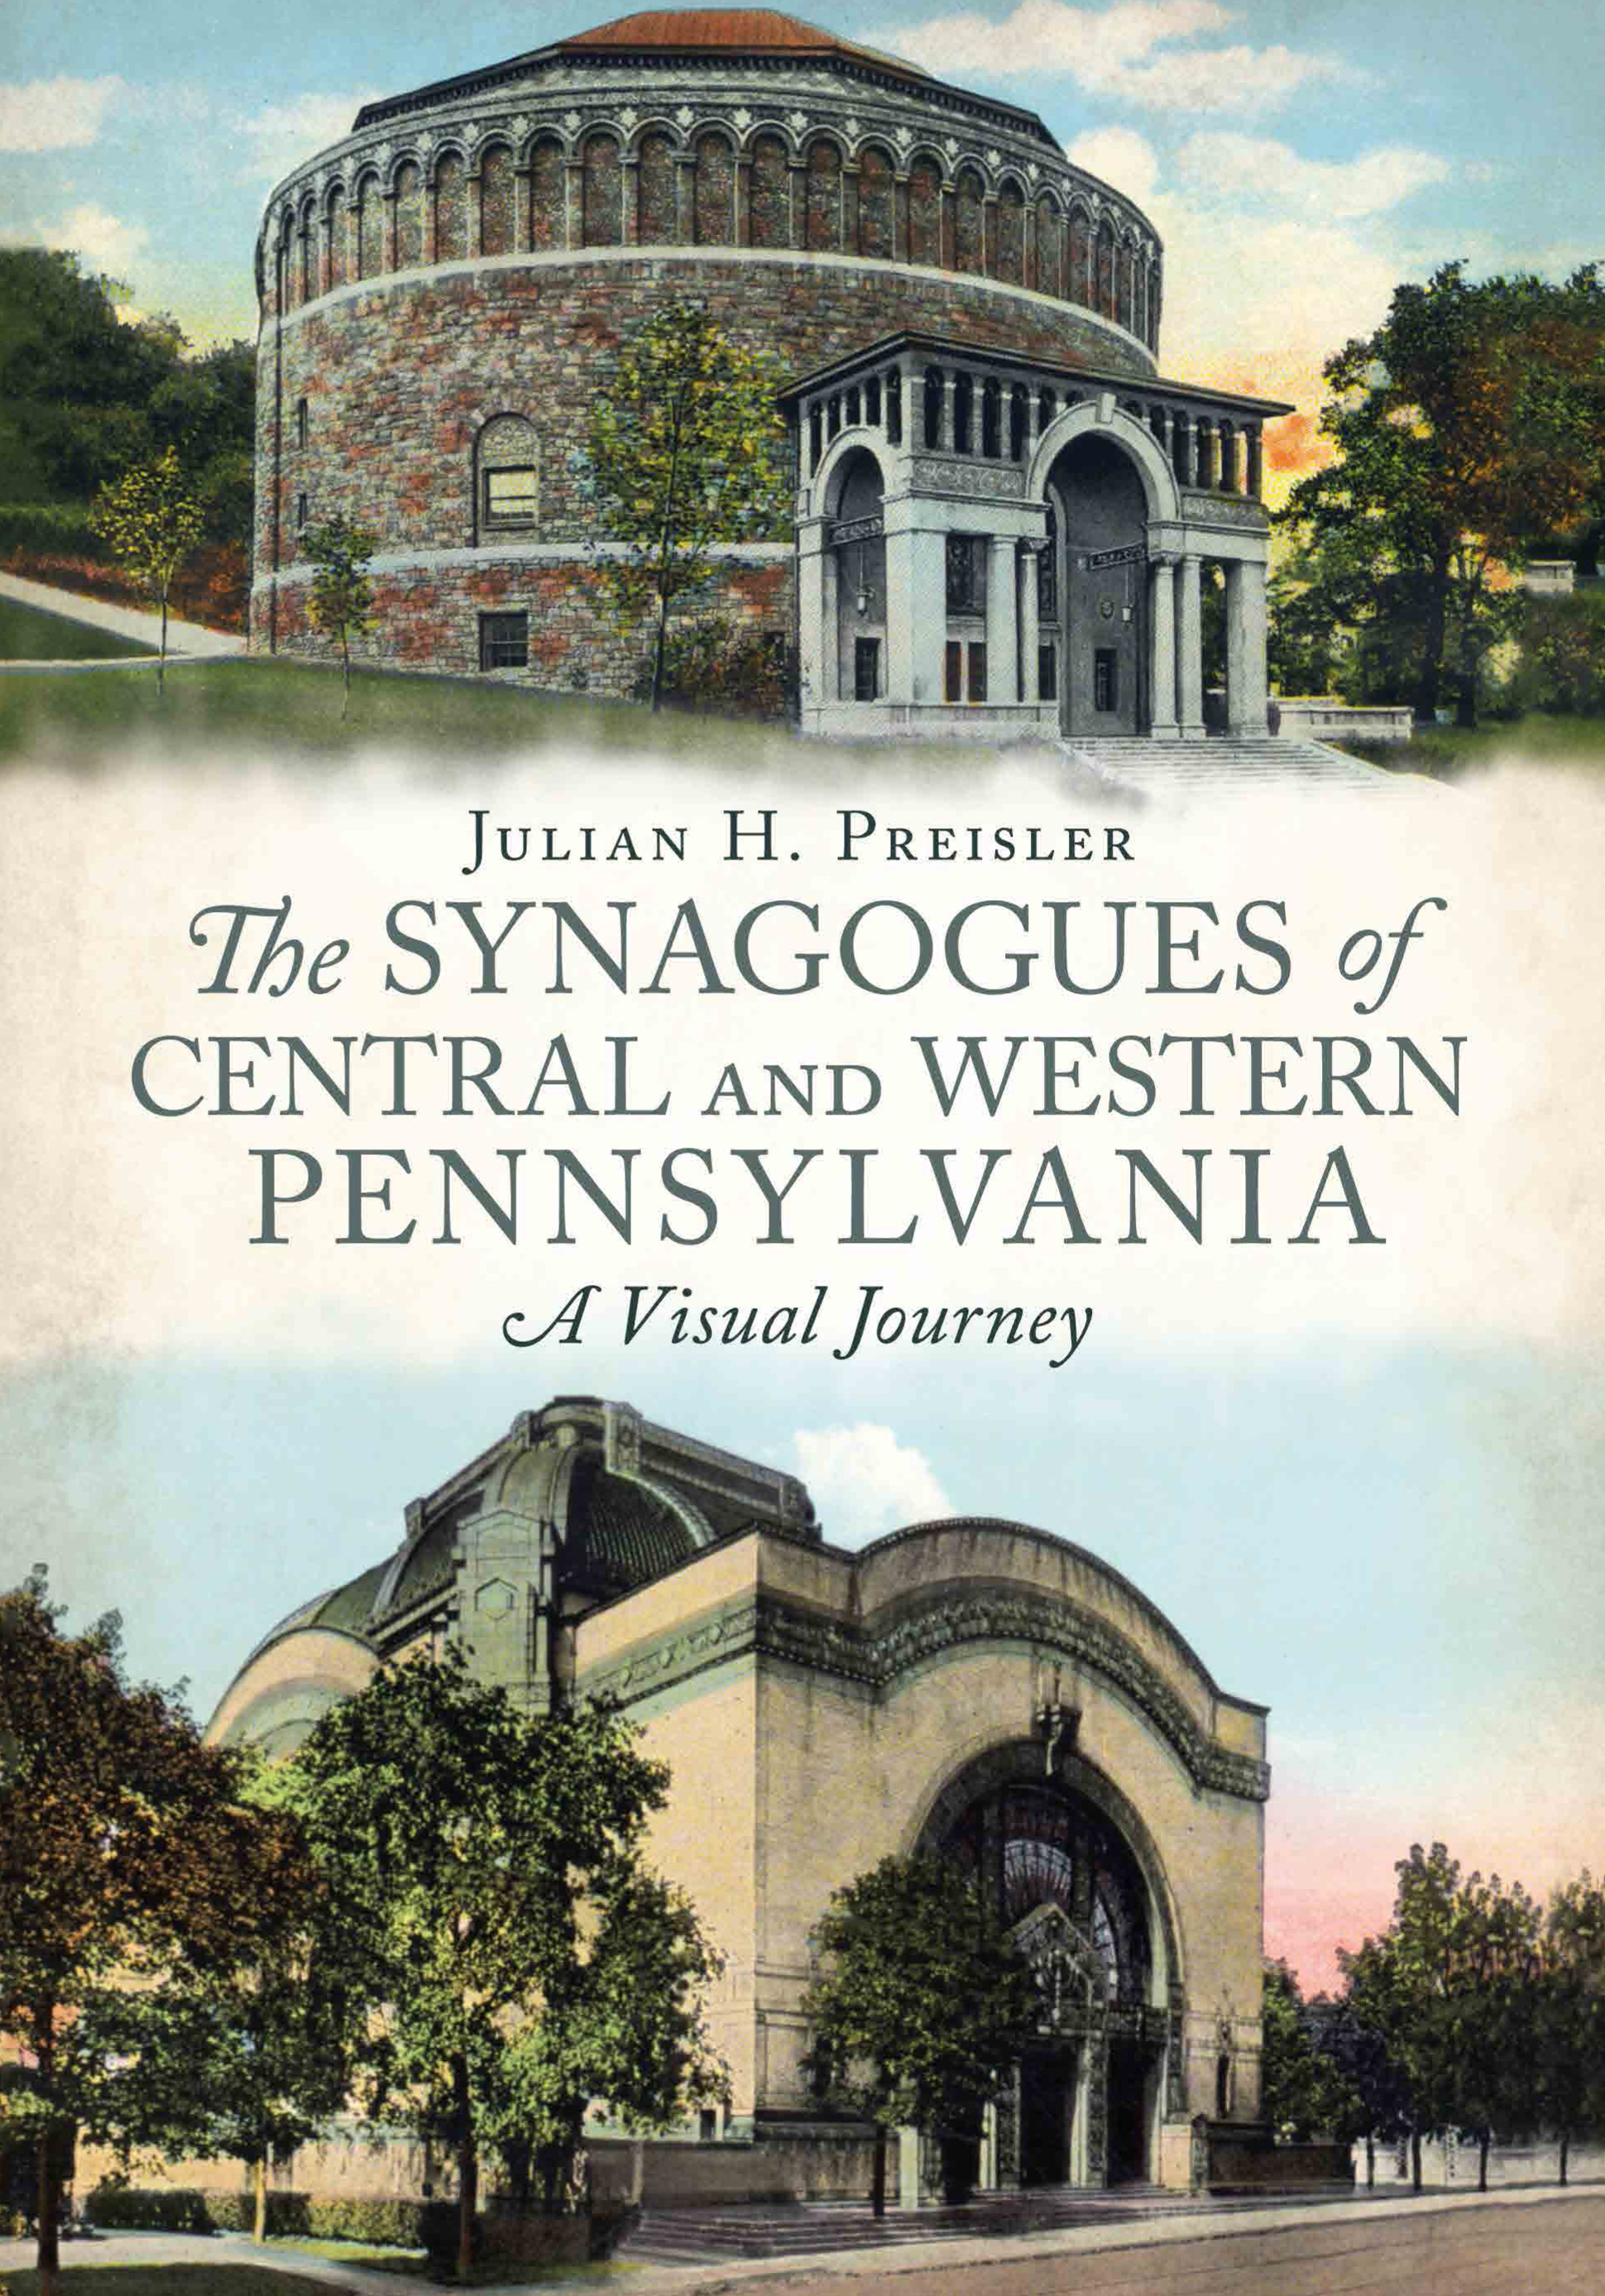 The Synagogues of Central & Western Pennsylvania: A Visual Journey